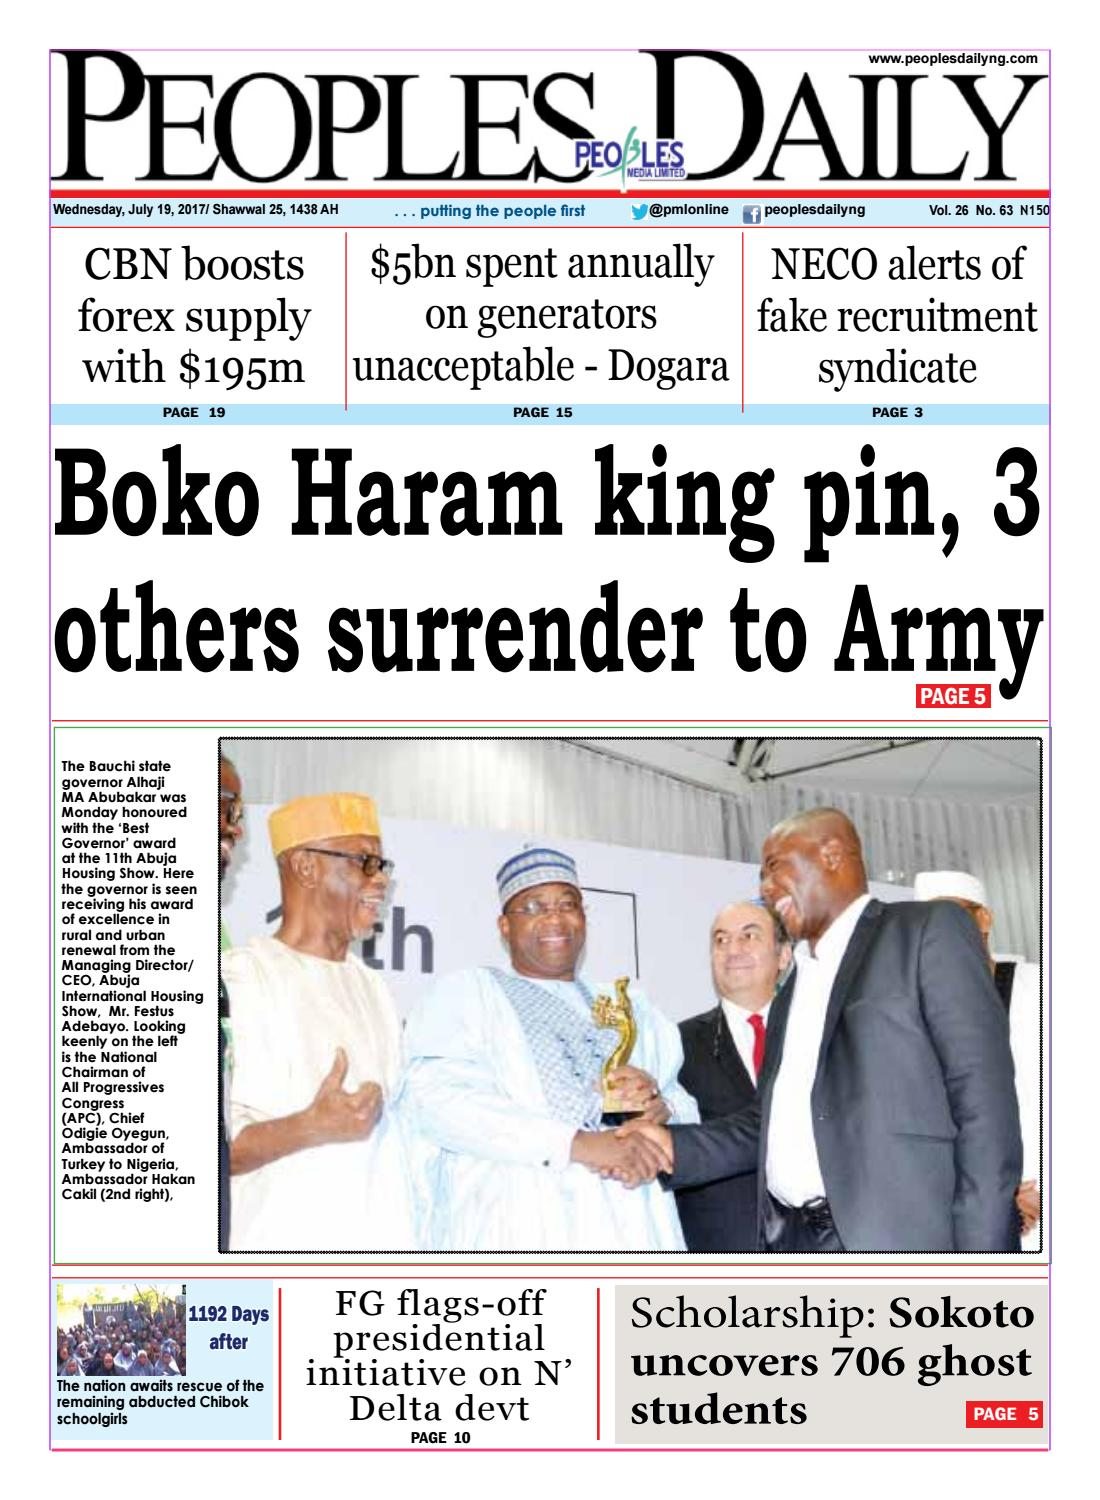 Wednesday, July 19, 2017 Edition by Peoples Media Limited